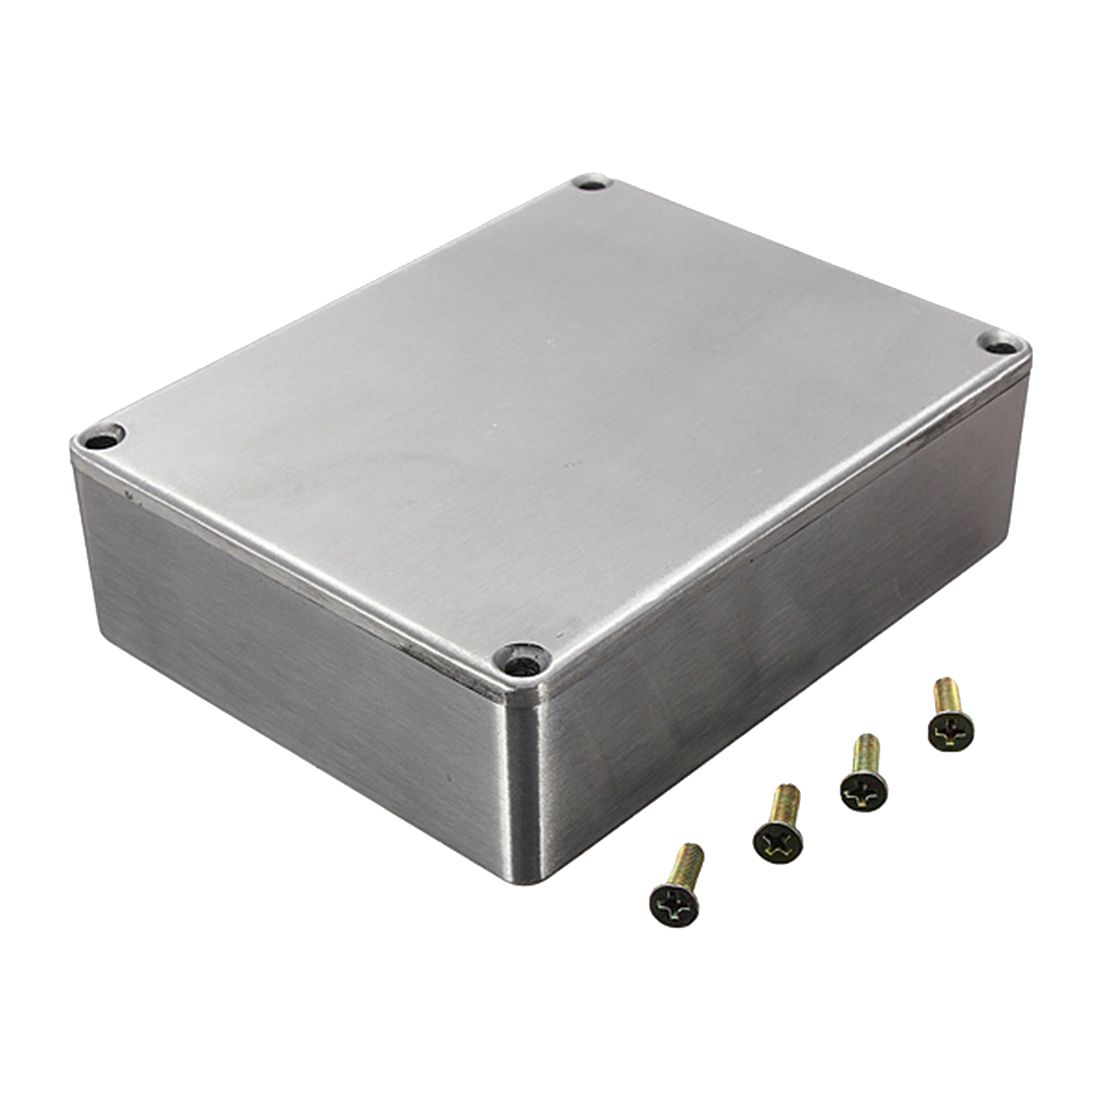 5 PCS of (1590BB Guitar Effects Box Container Aluminum 120x95x35mm Silver) effects of bibliotherapy on behaviour modification of adolescents